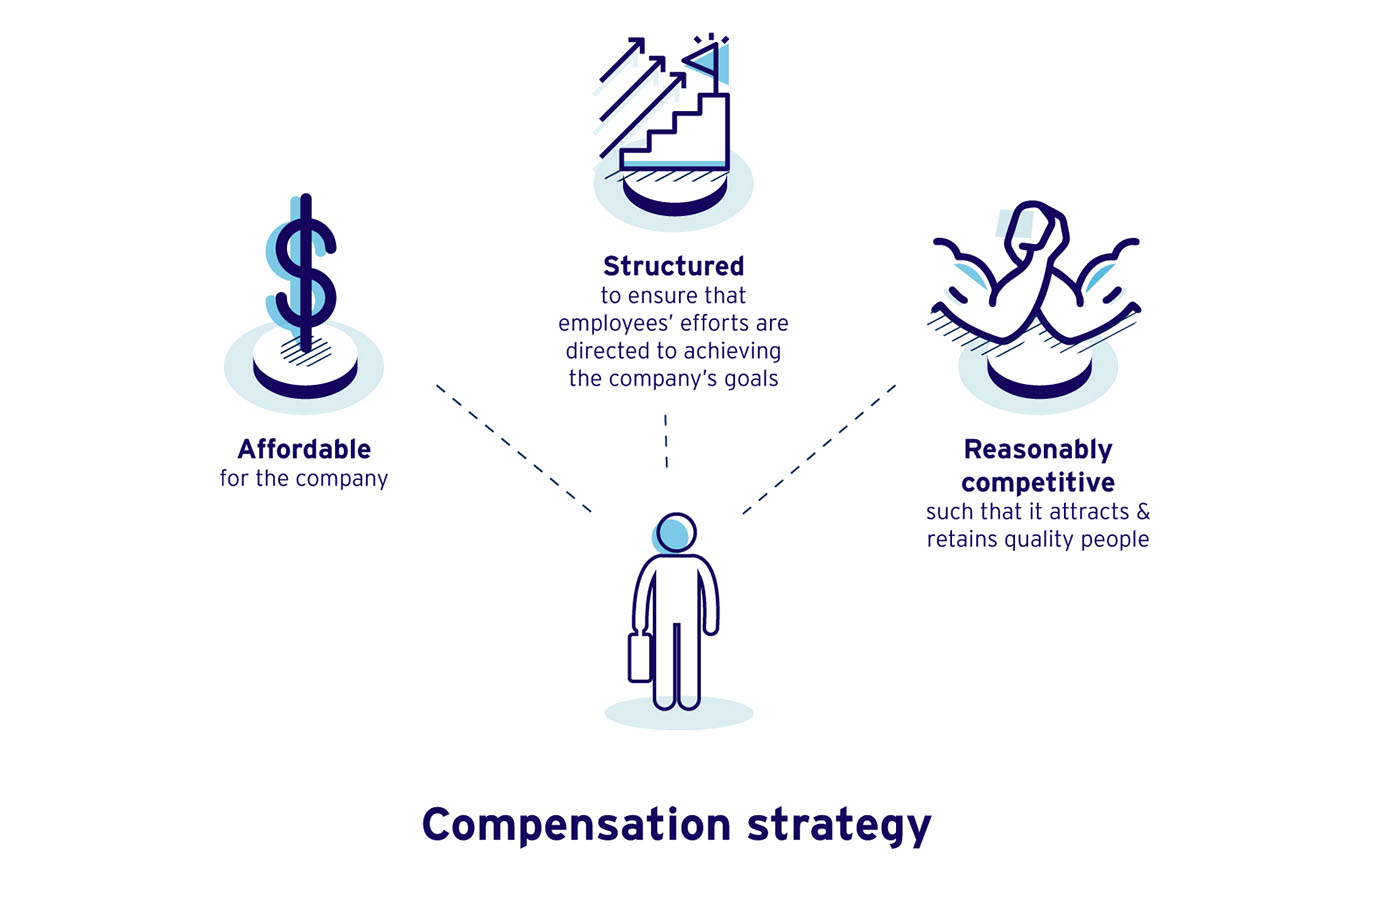 Reviewing Compensation & Benefits Strategy in New Normal